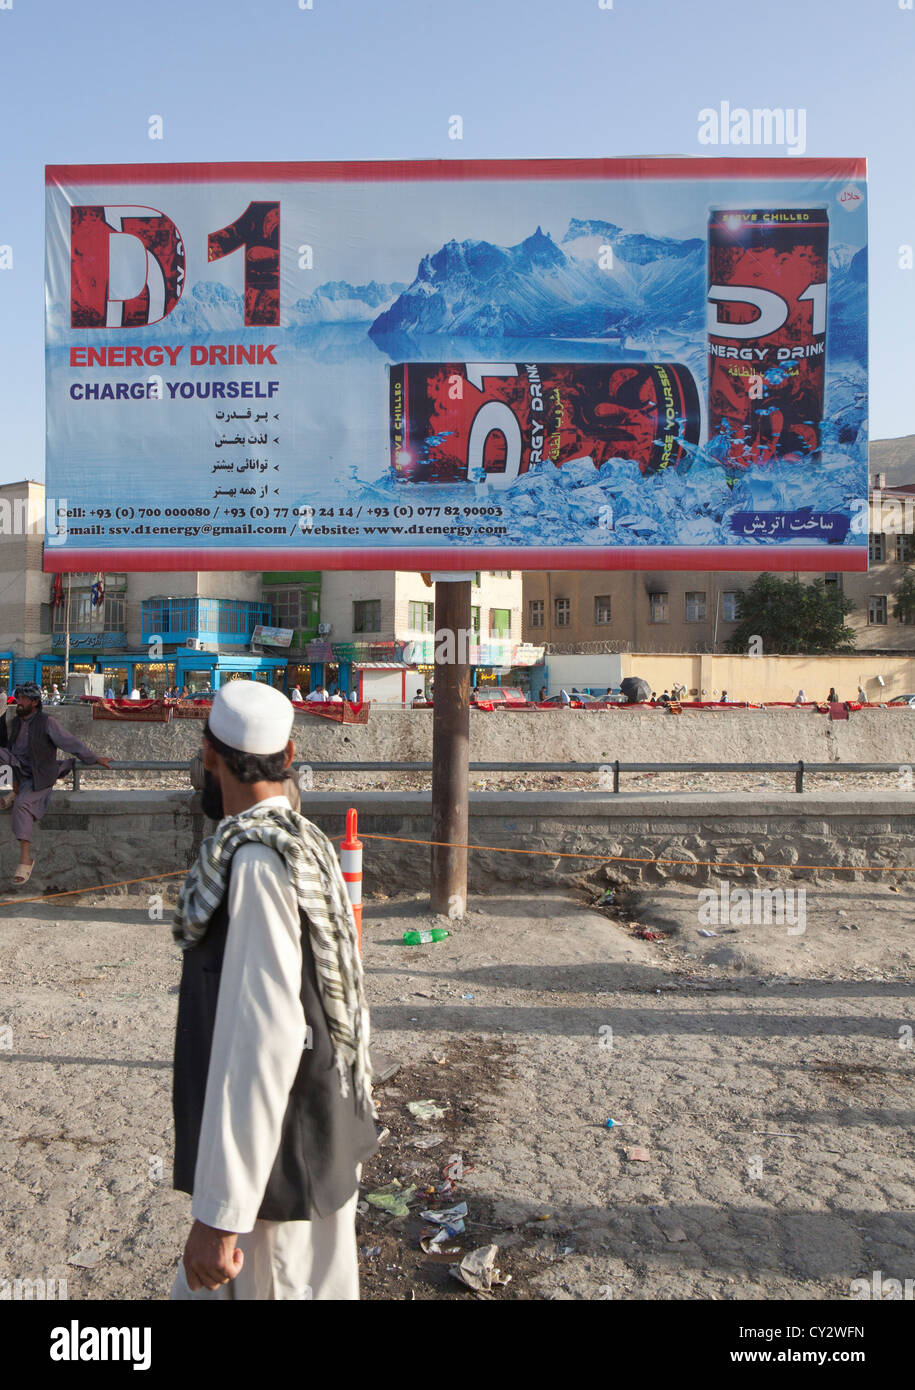 advertisement of energy drink in kabul, Afghanistan - Stock Image